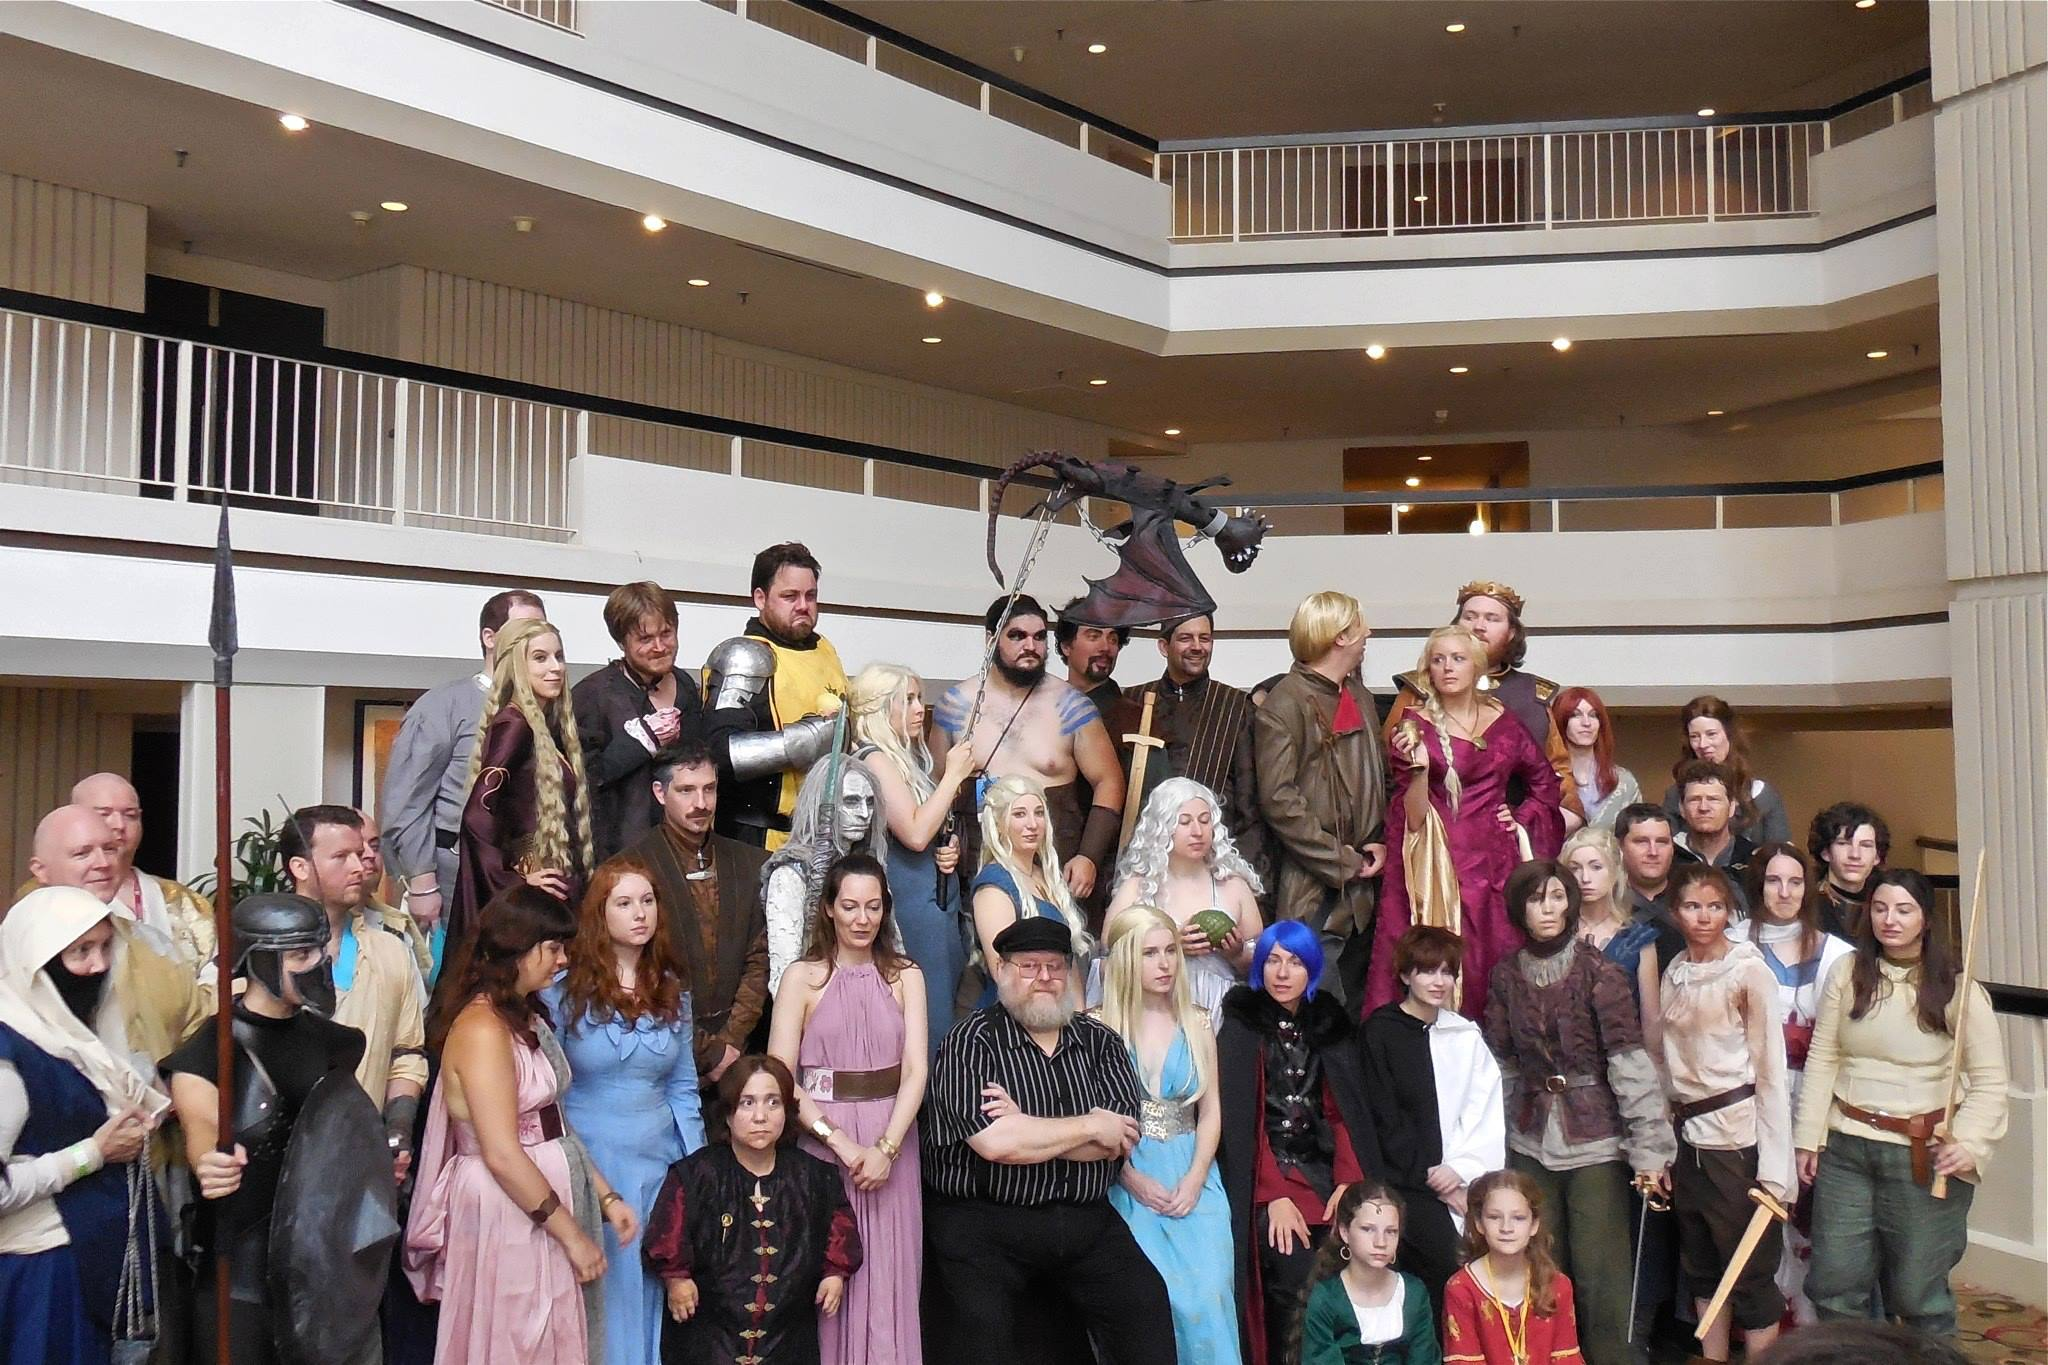 Dragon Con 2013 - Just one of the many Game of Thrones photoshoots